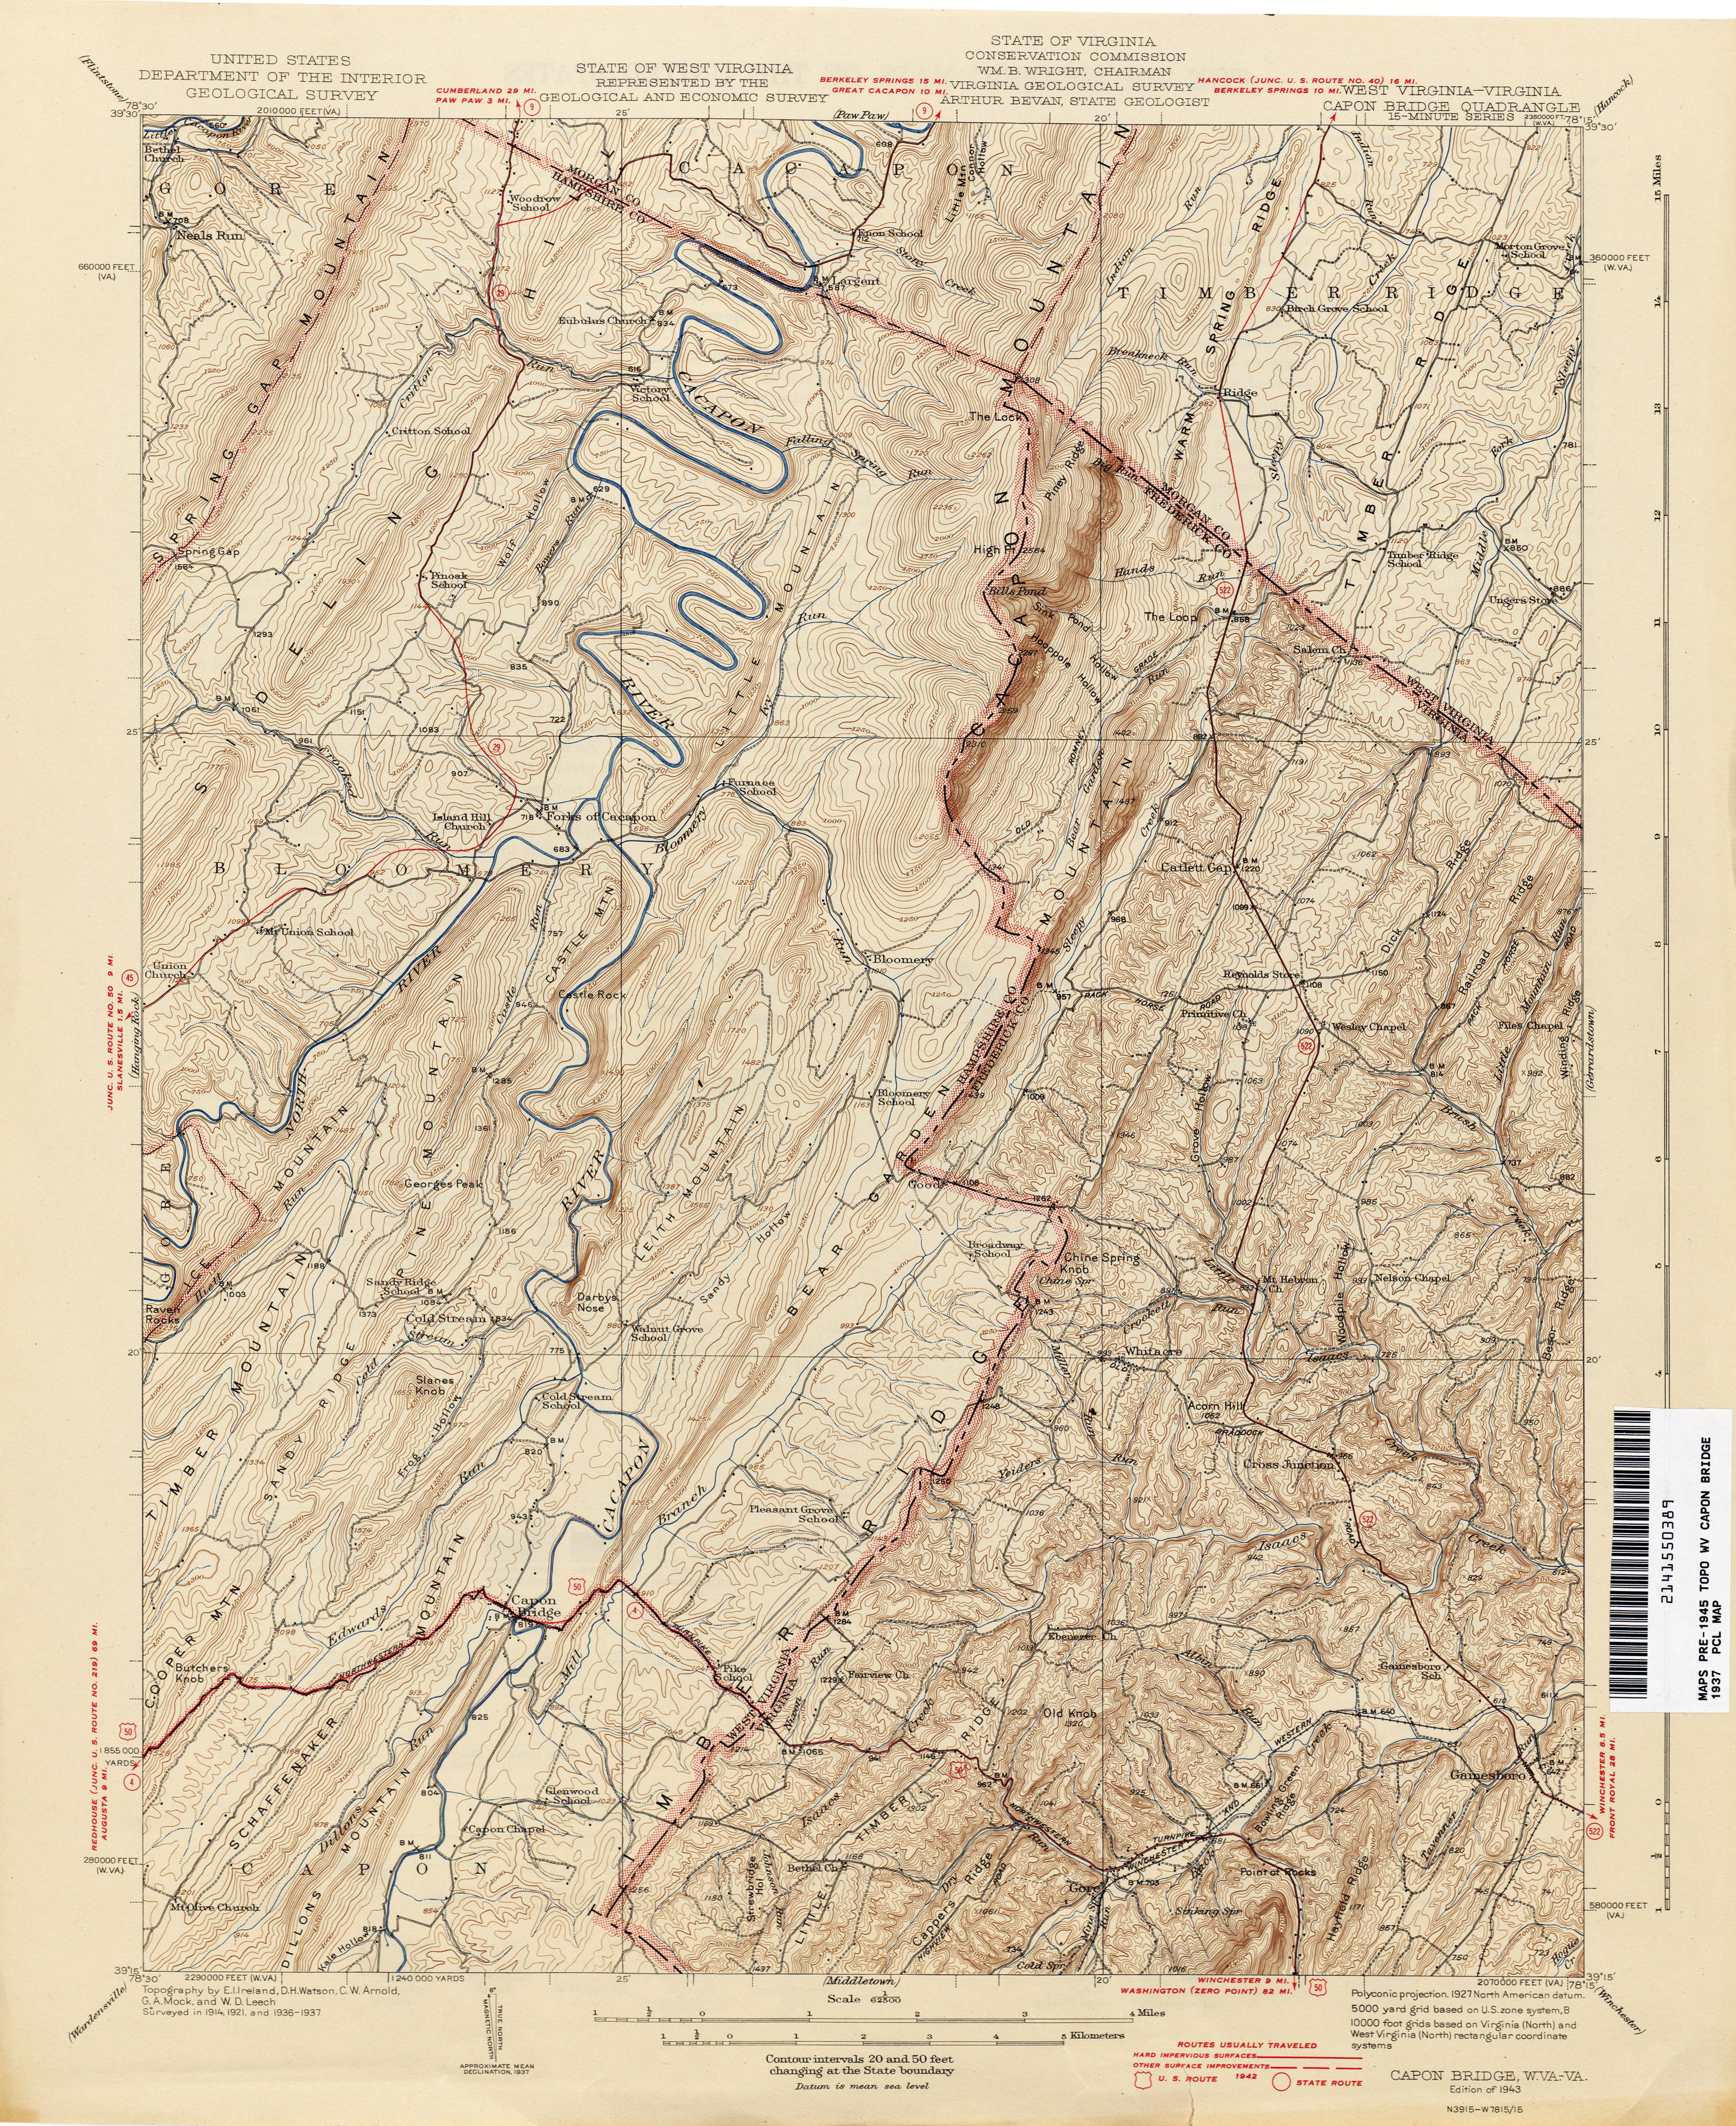 West Virginia Historical Topographic Maps Perry Castaneda Map Collection Ut Library Online